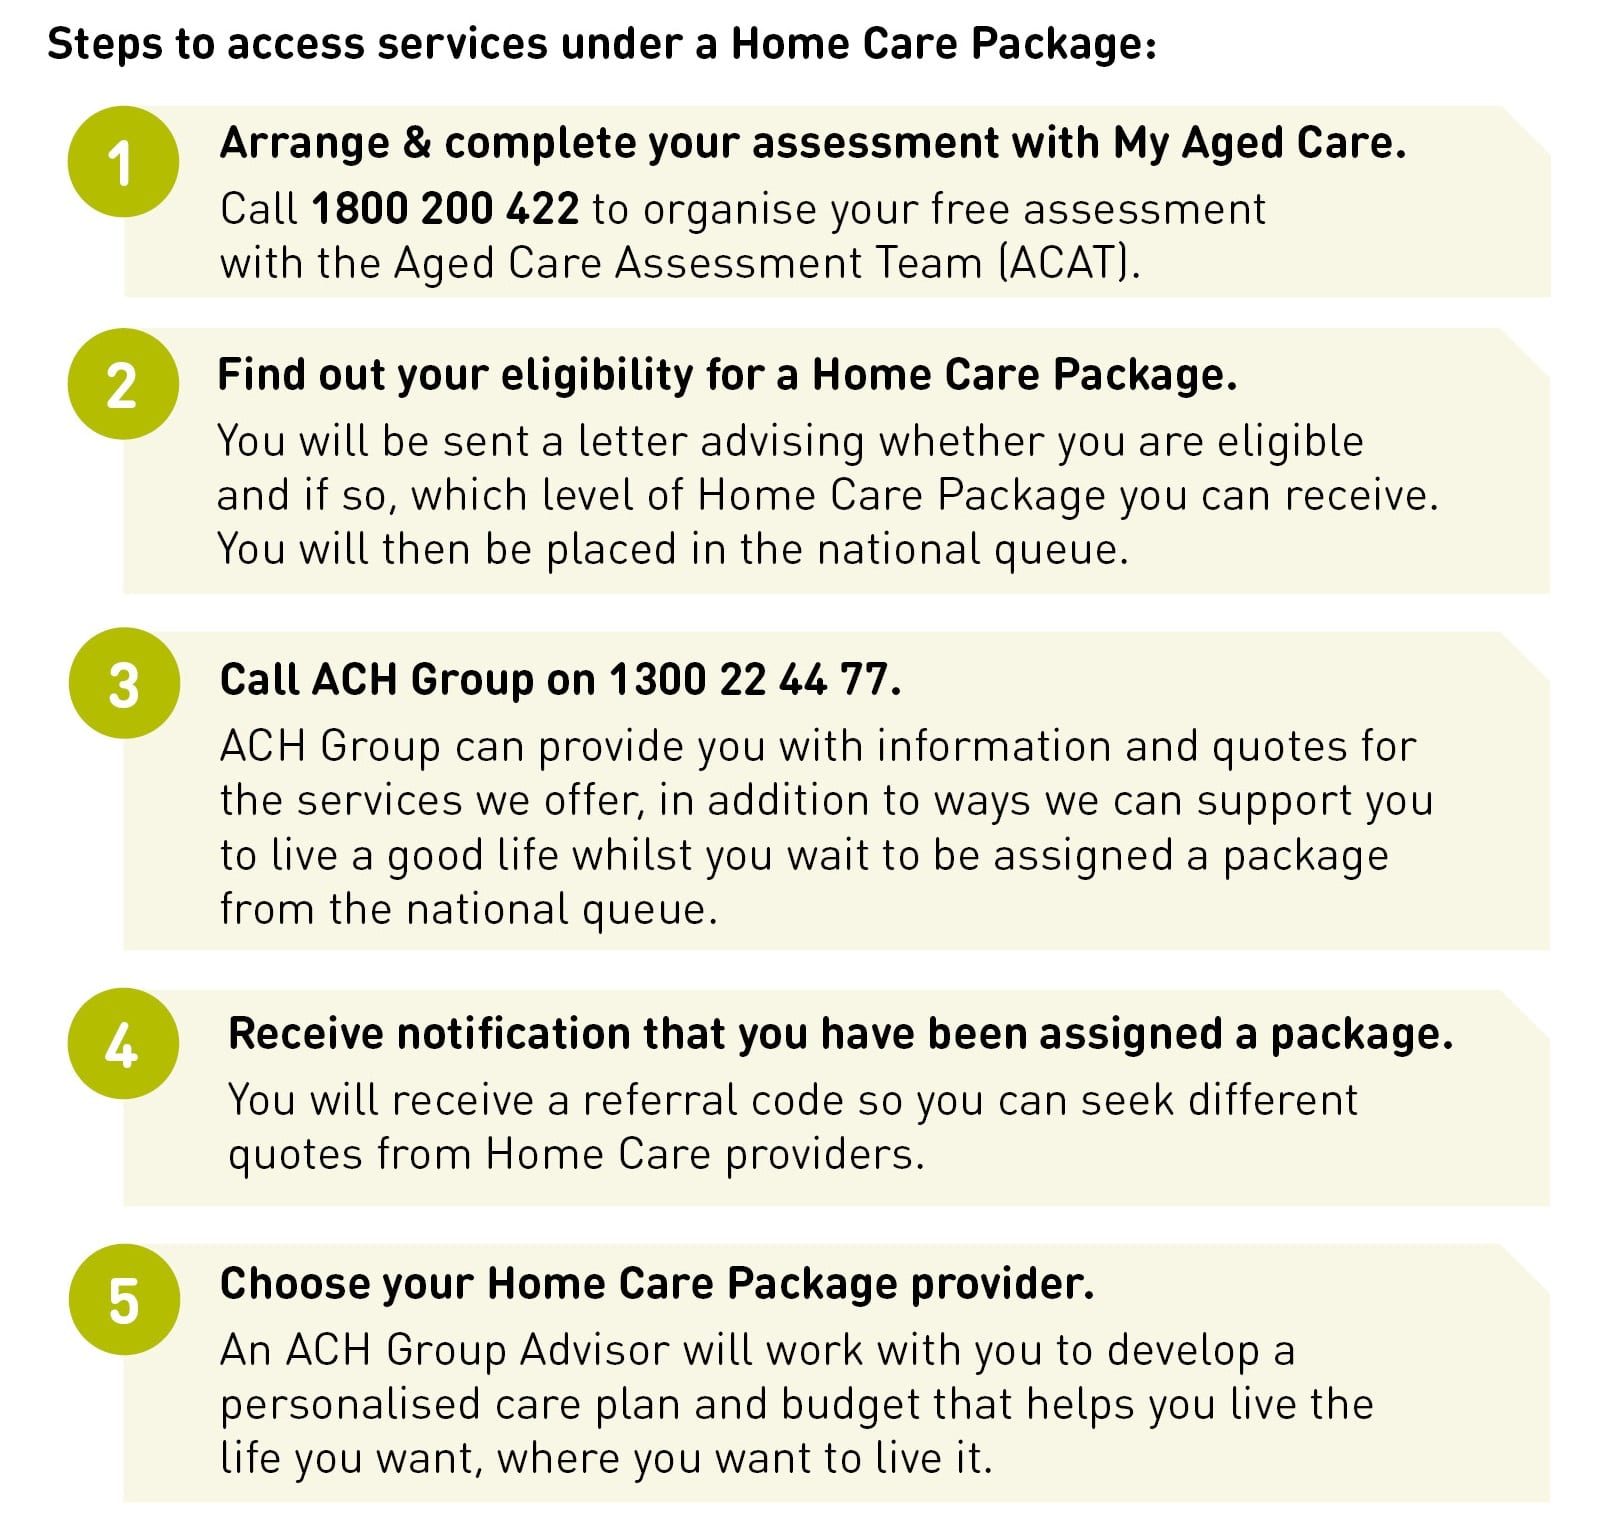 Steps for home care packages